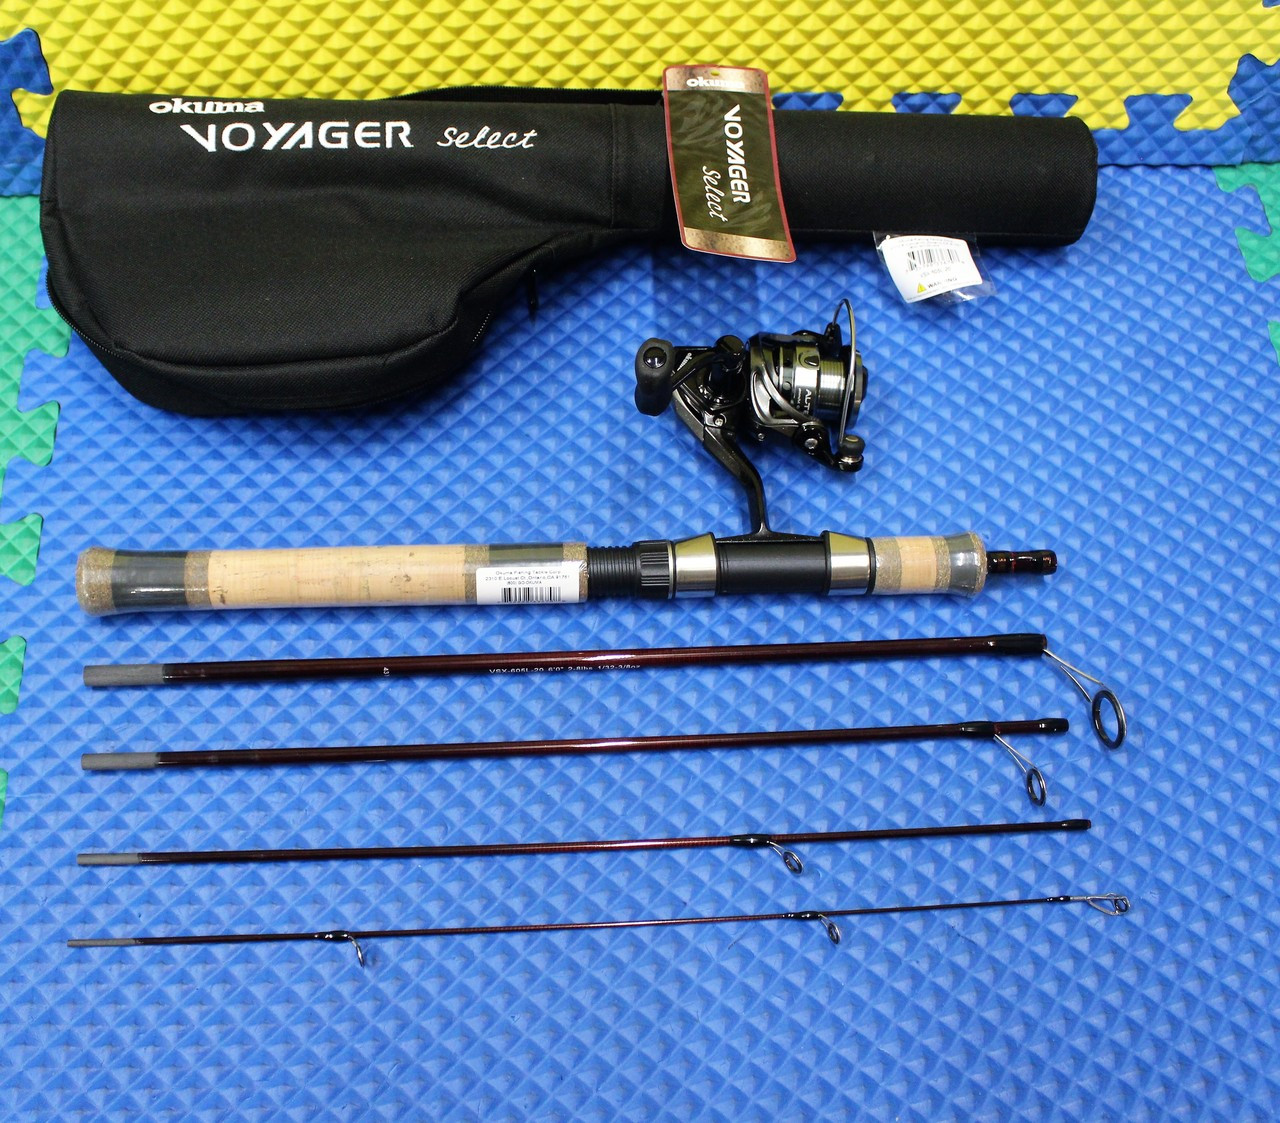 "Okuma Voyager Select Spinning Travel Kit Combo 6' 0"" Rod Light ATE-20 Reel VSX-605L-20"